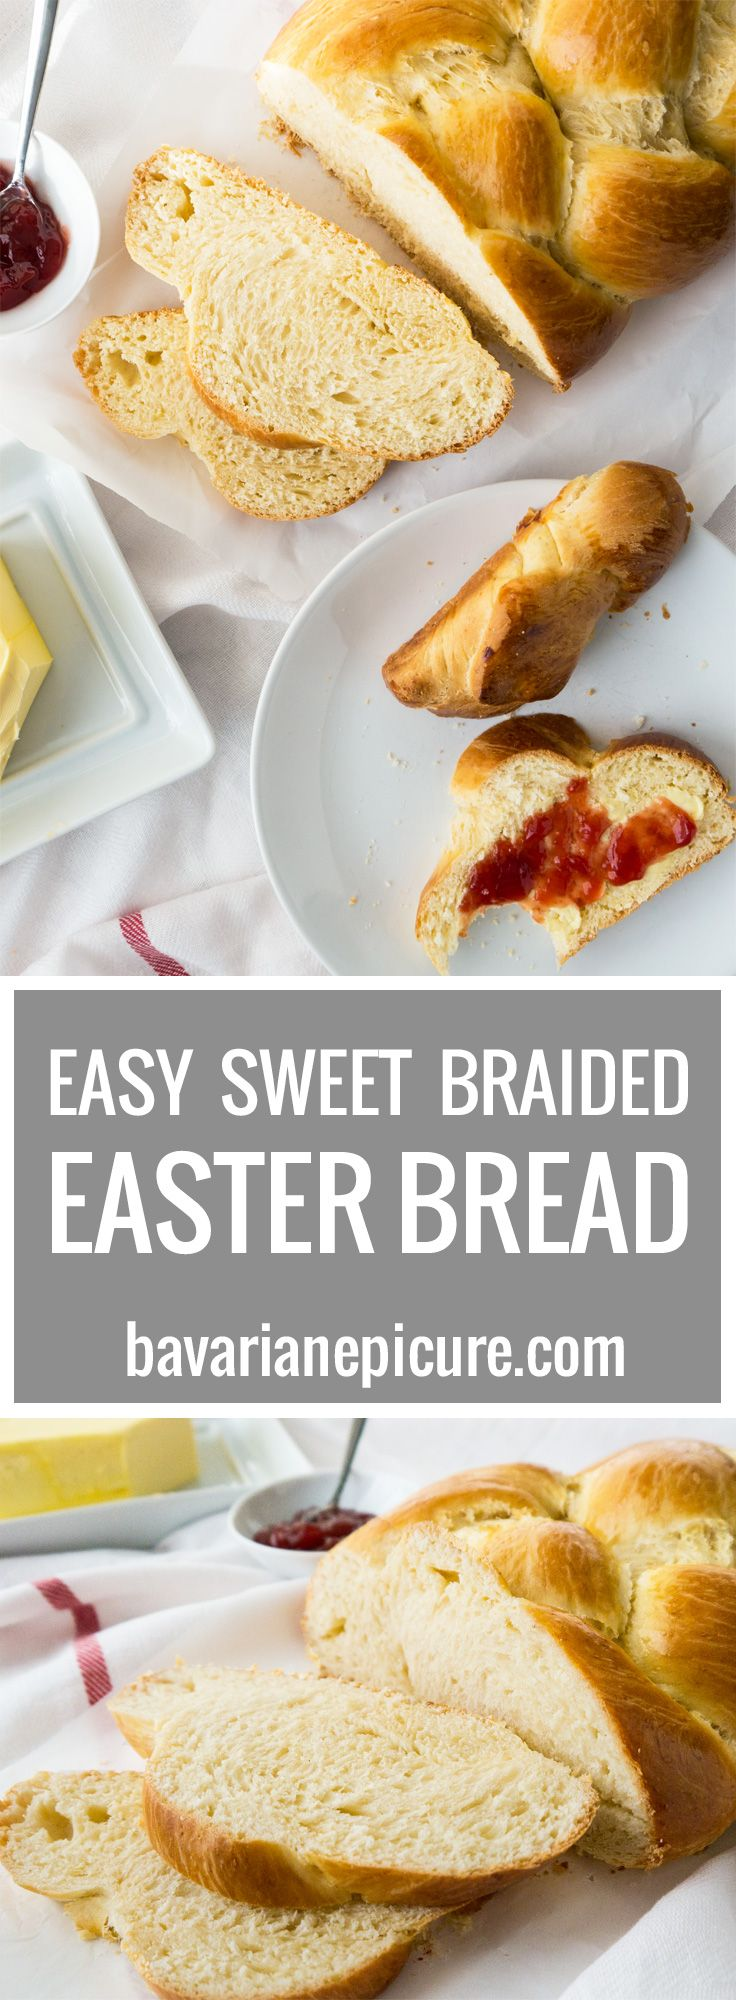 Easy Sweet Braided Easter Bread | Recipe | Butter ...